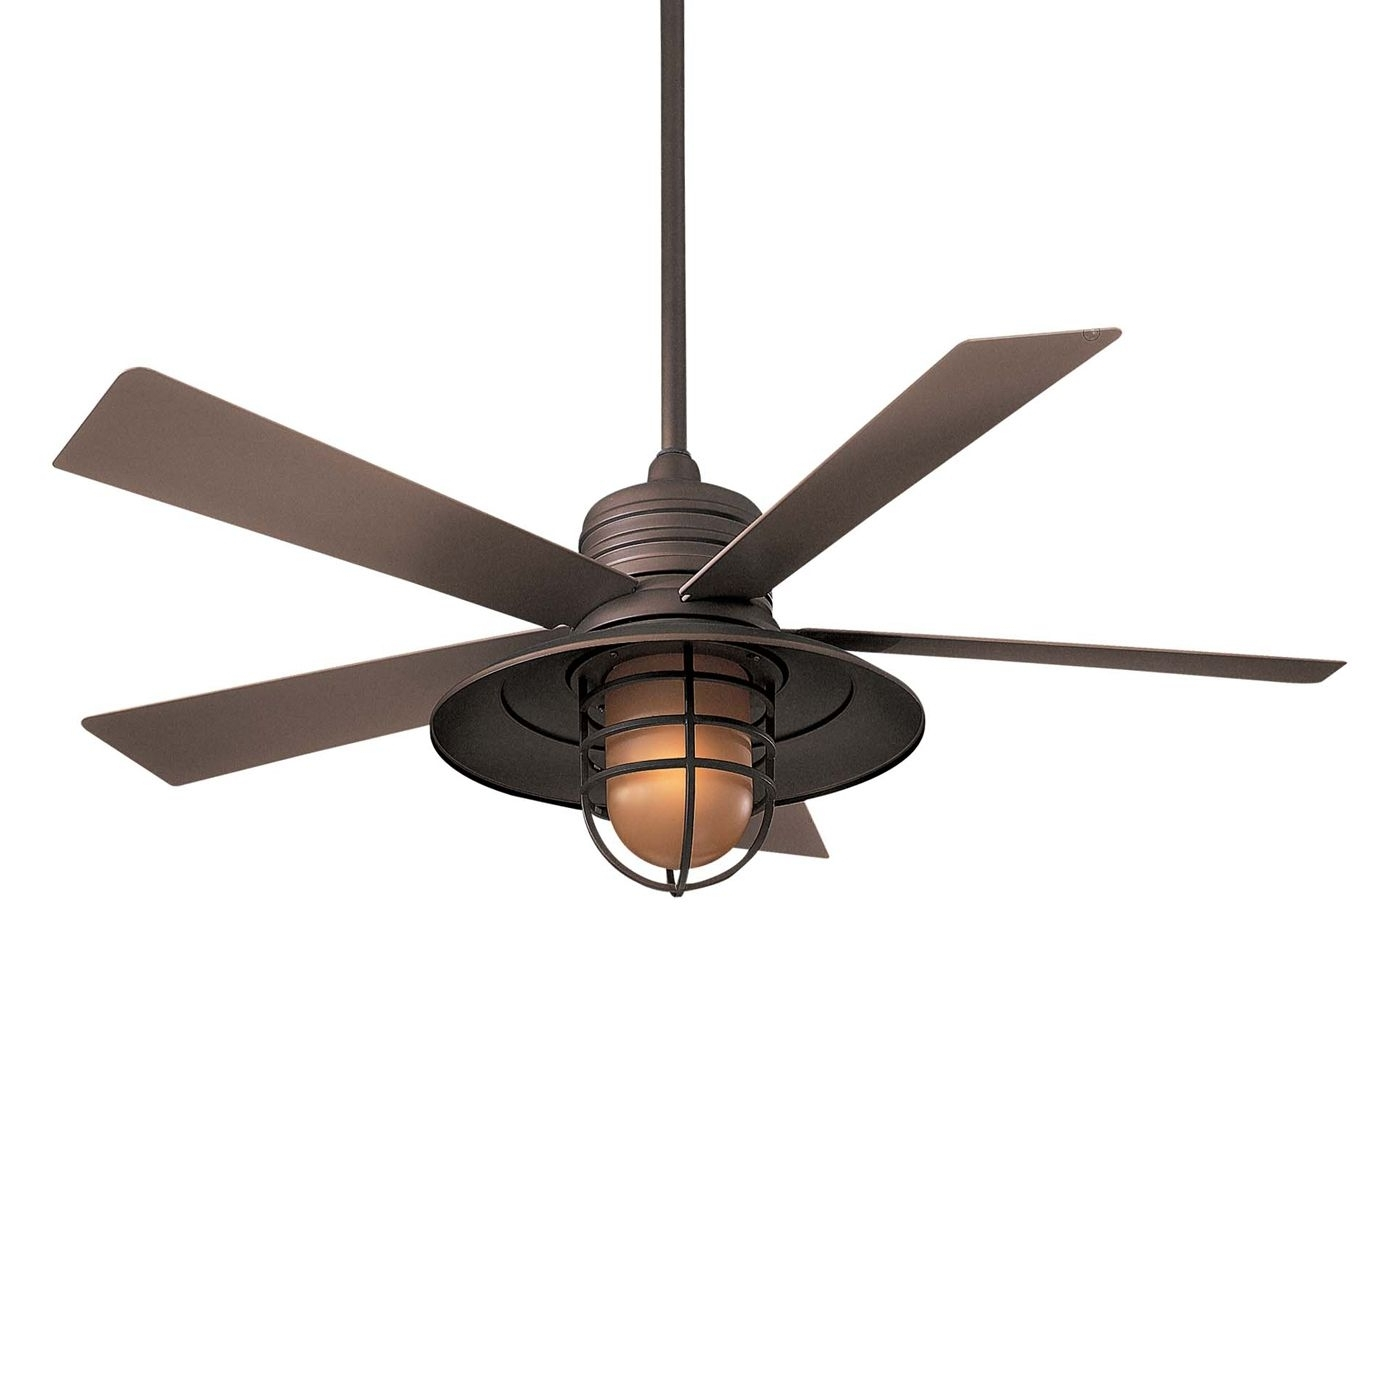 Best And Newest Minka Aire F582 54 In Rainman™ Indoor/outdoor Ceiling Fan At Atg Throughout Minka Outdoor Ceiling Fans With Lights (View 12 of 20)